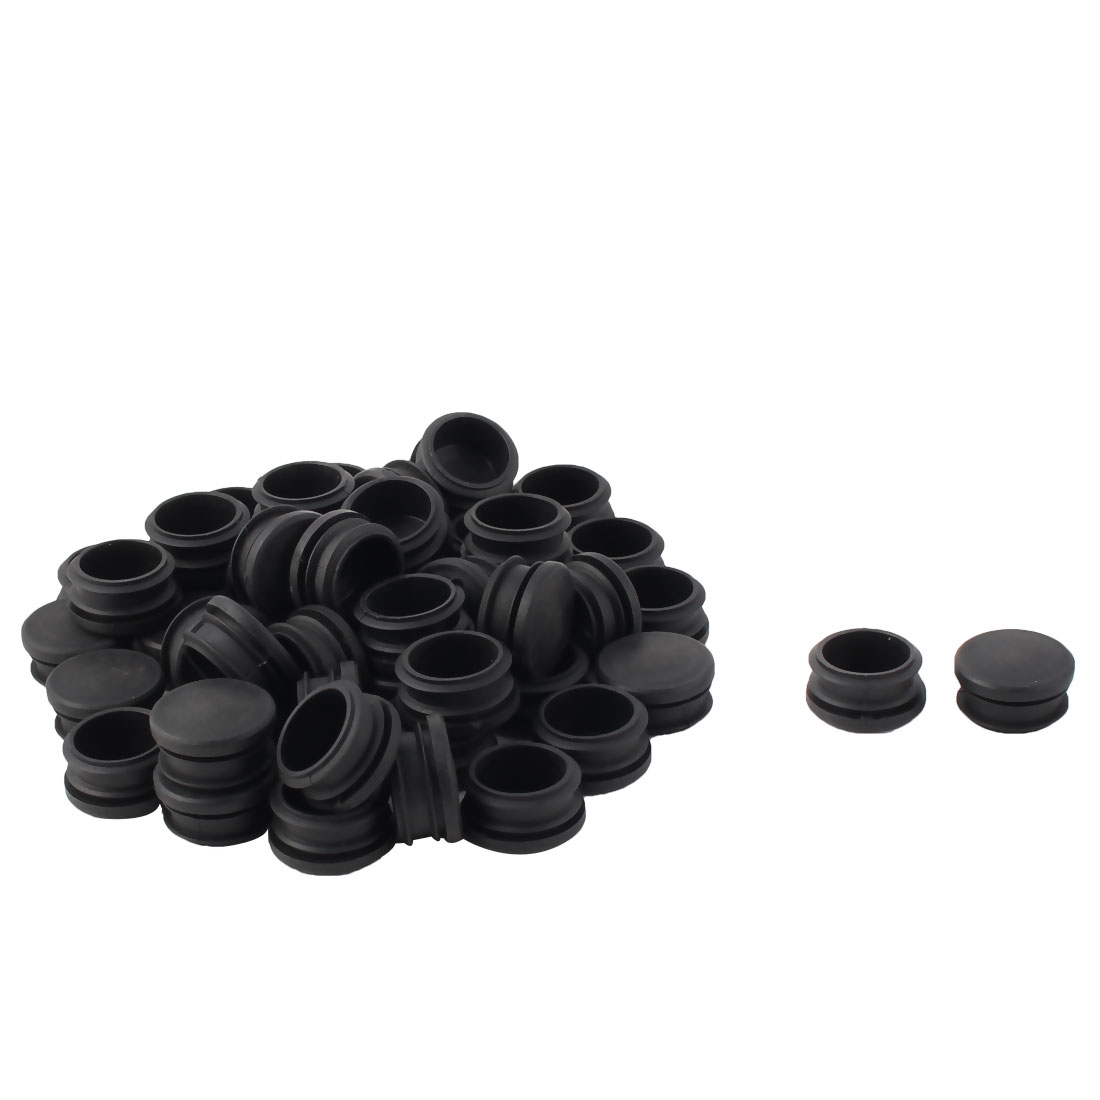 Plastic Round Tube Insert Blanking End Protectors Caps Black 30mm 50 PCS